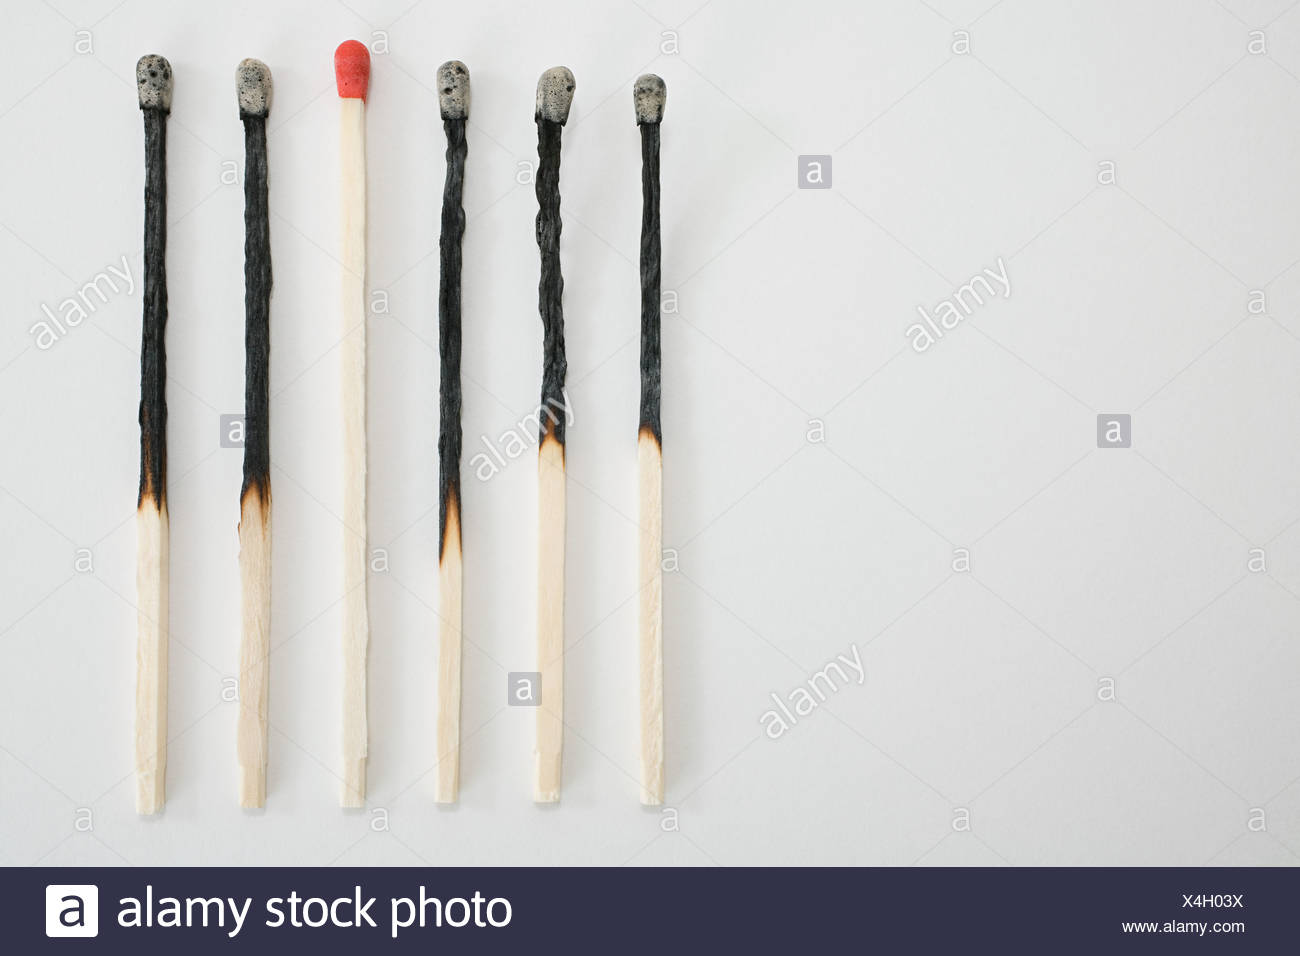 An unlit and burnt matches in a row - Stock Image